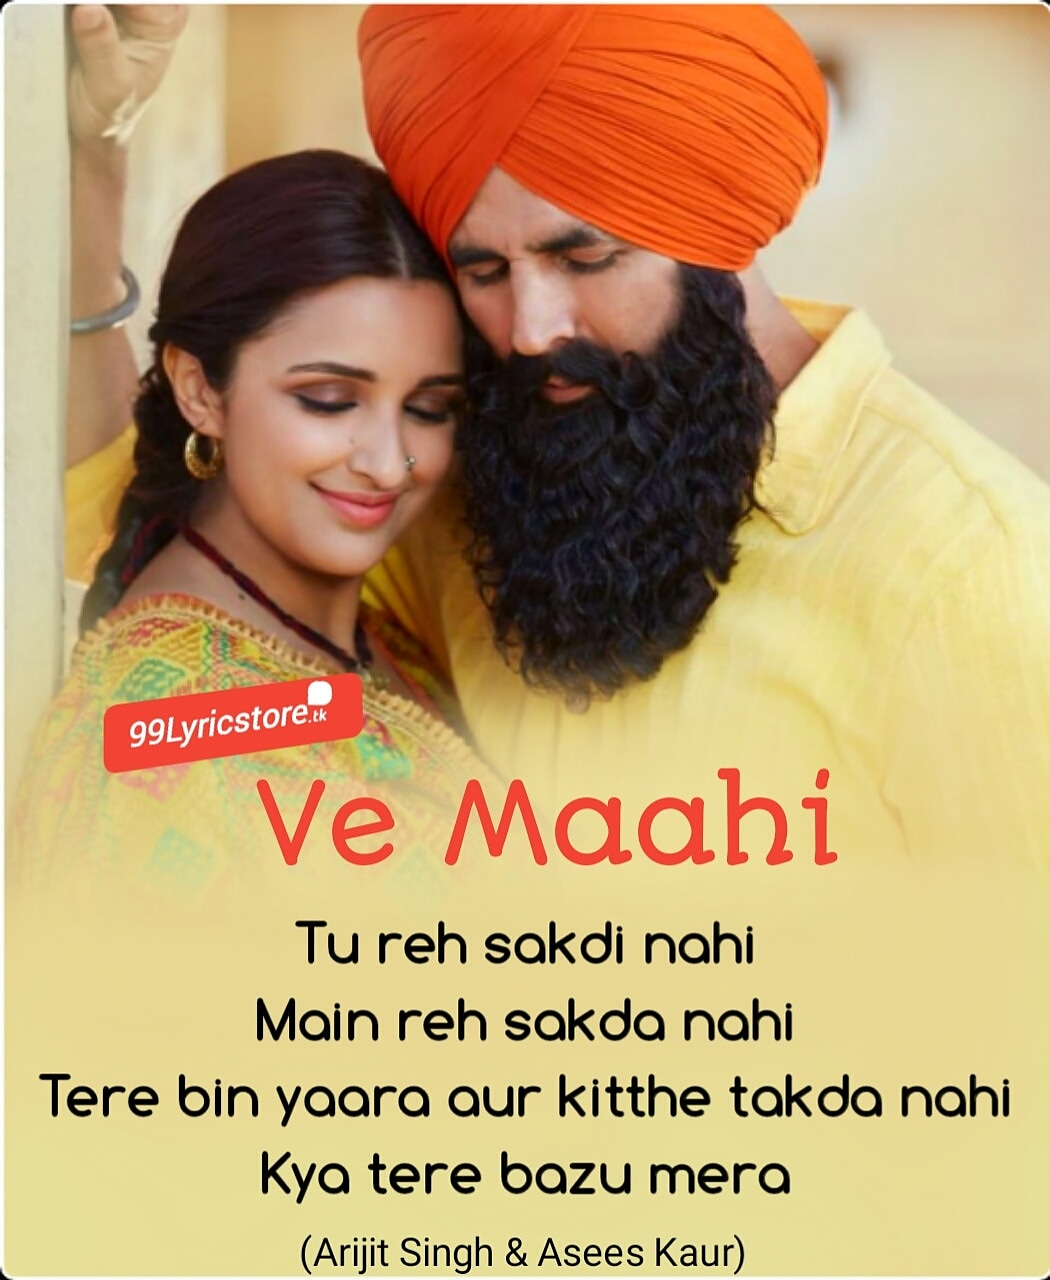 Top 20 Latest Bollywood Songs Lyrics With Quotes Images My life quotes, song quotes, attitude quotes, rain thoughts, deep thoughts, barish quotes, attitude caption for instagram, cool captions, gulzar quotes. top 20 latest bollywood songs lyrics